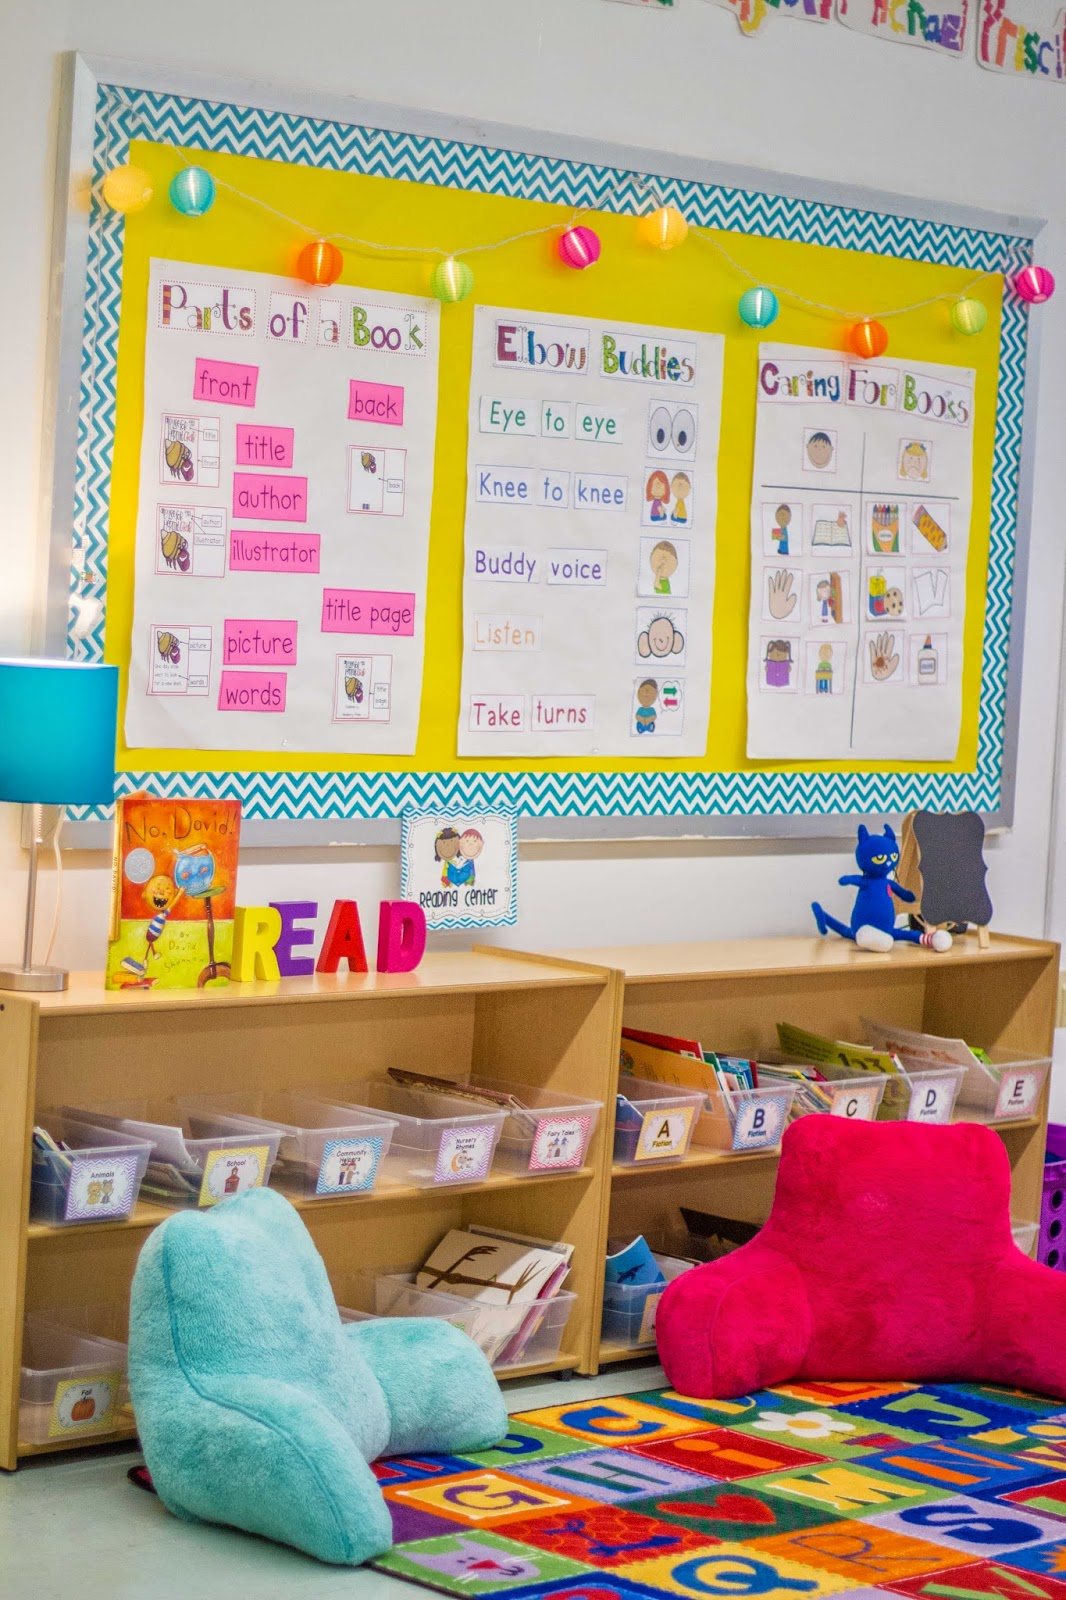 Kinder Garden: Mrs. Ricca's Kindergarten: Finally...Classroom Reveal